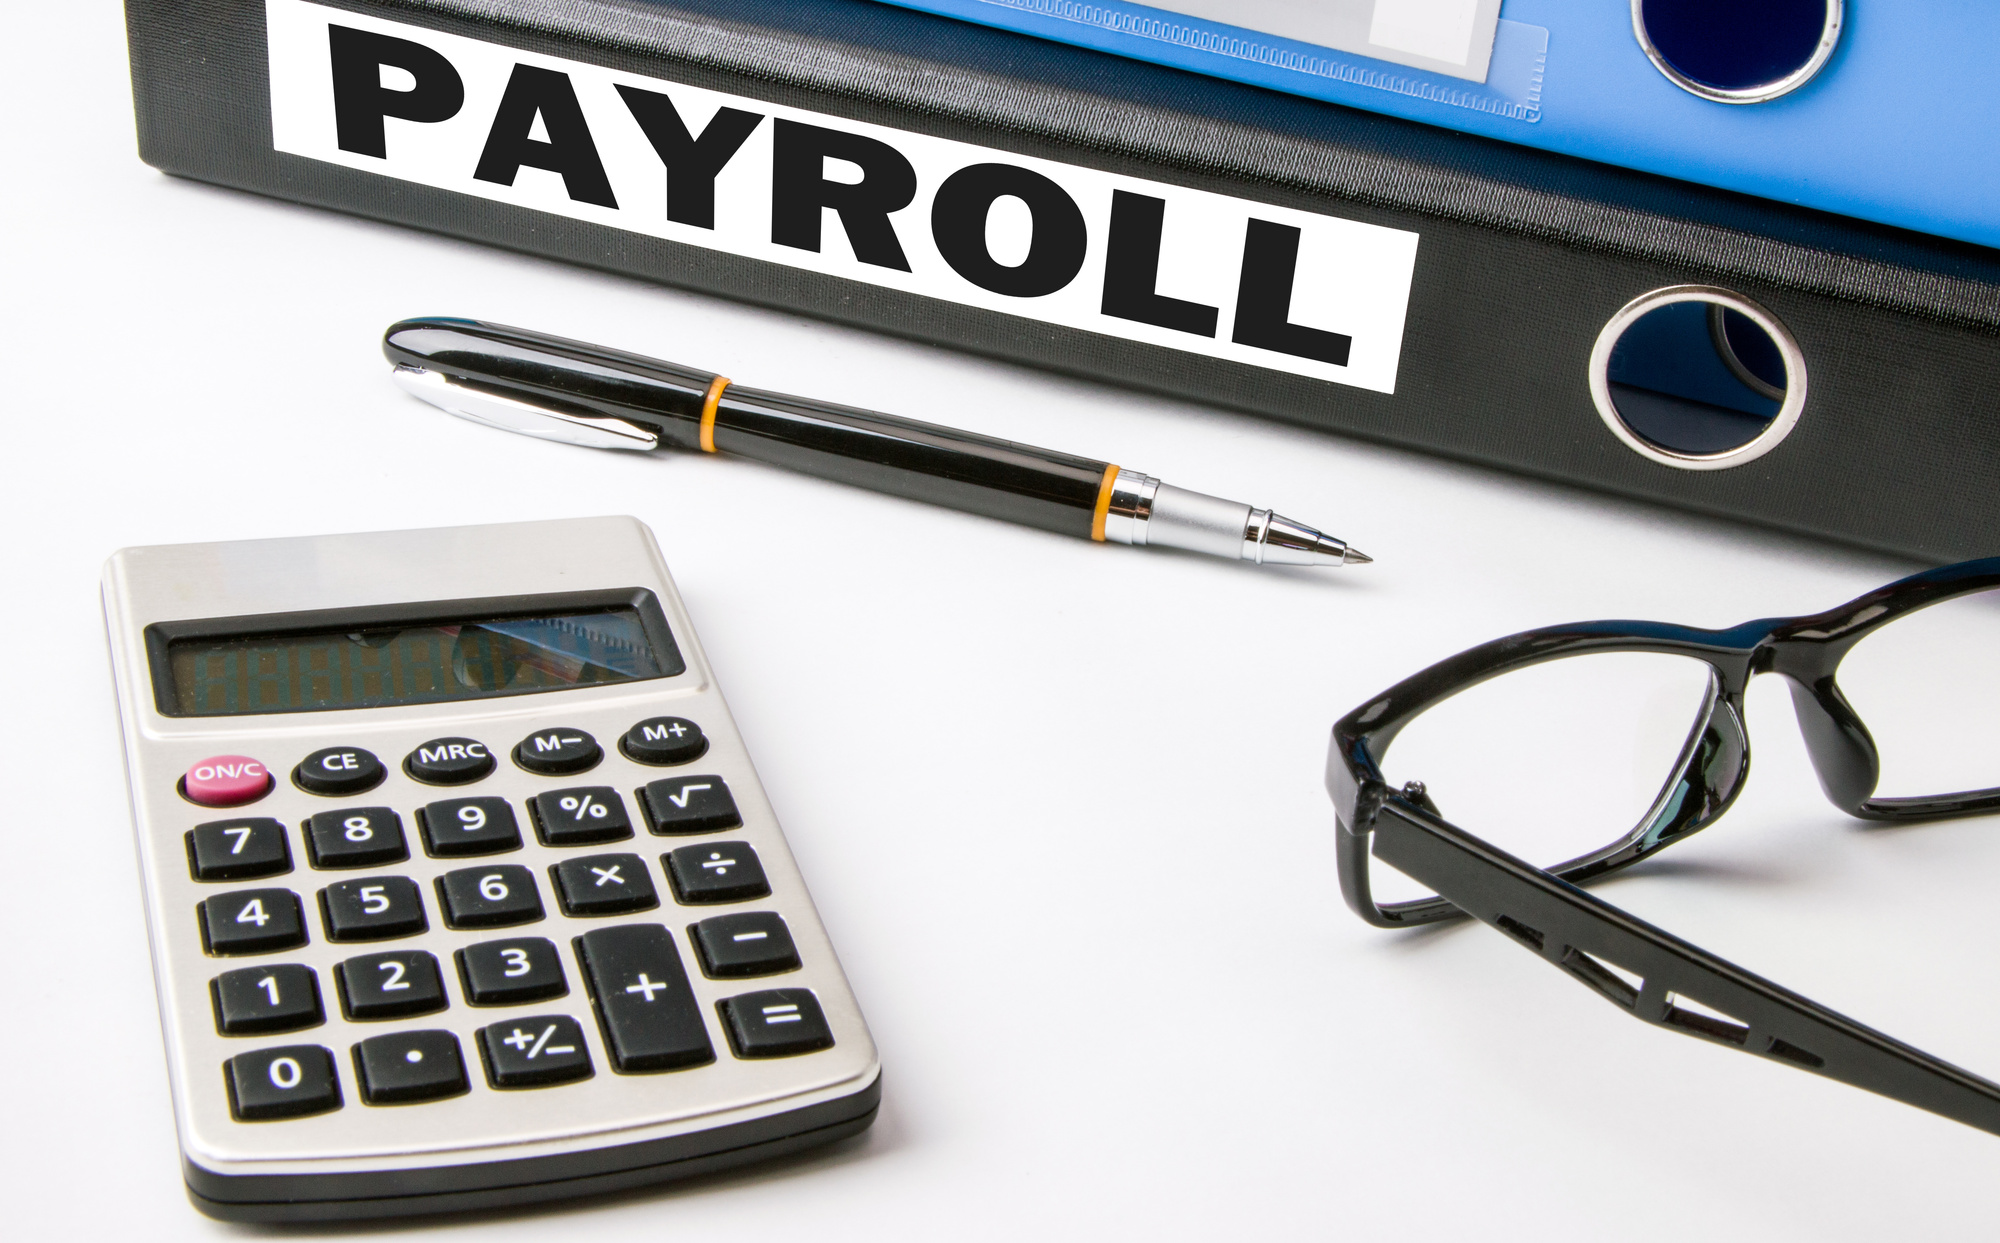 Payroll Essentials Displayed